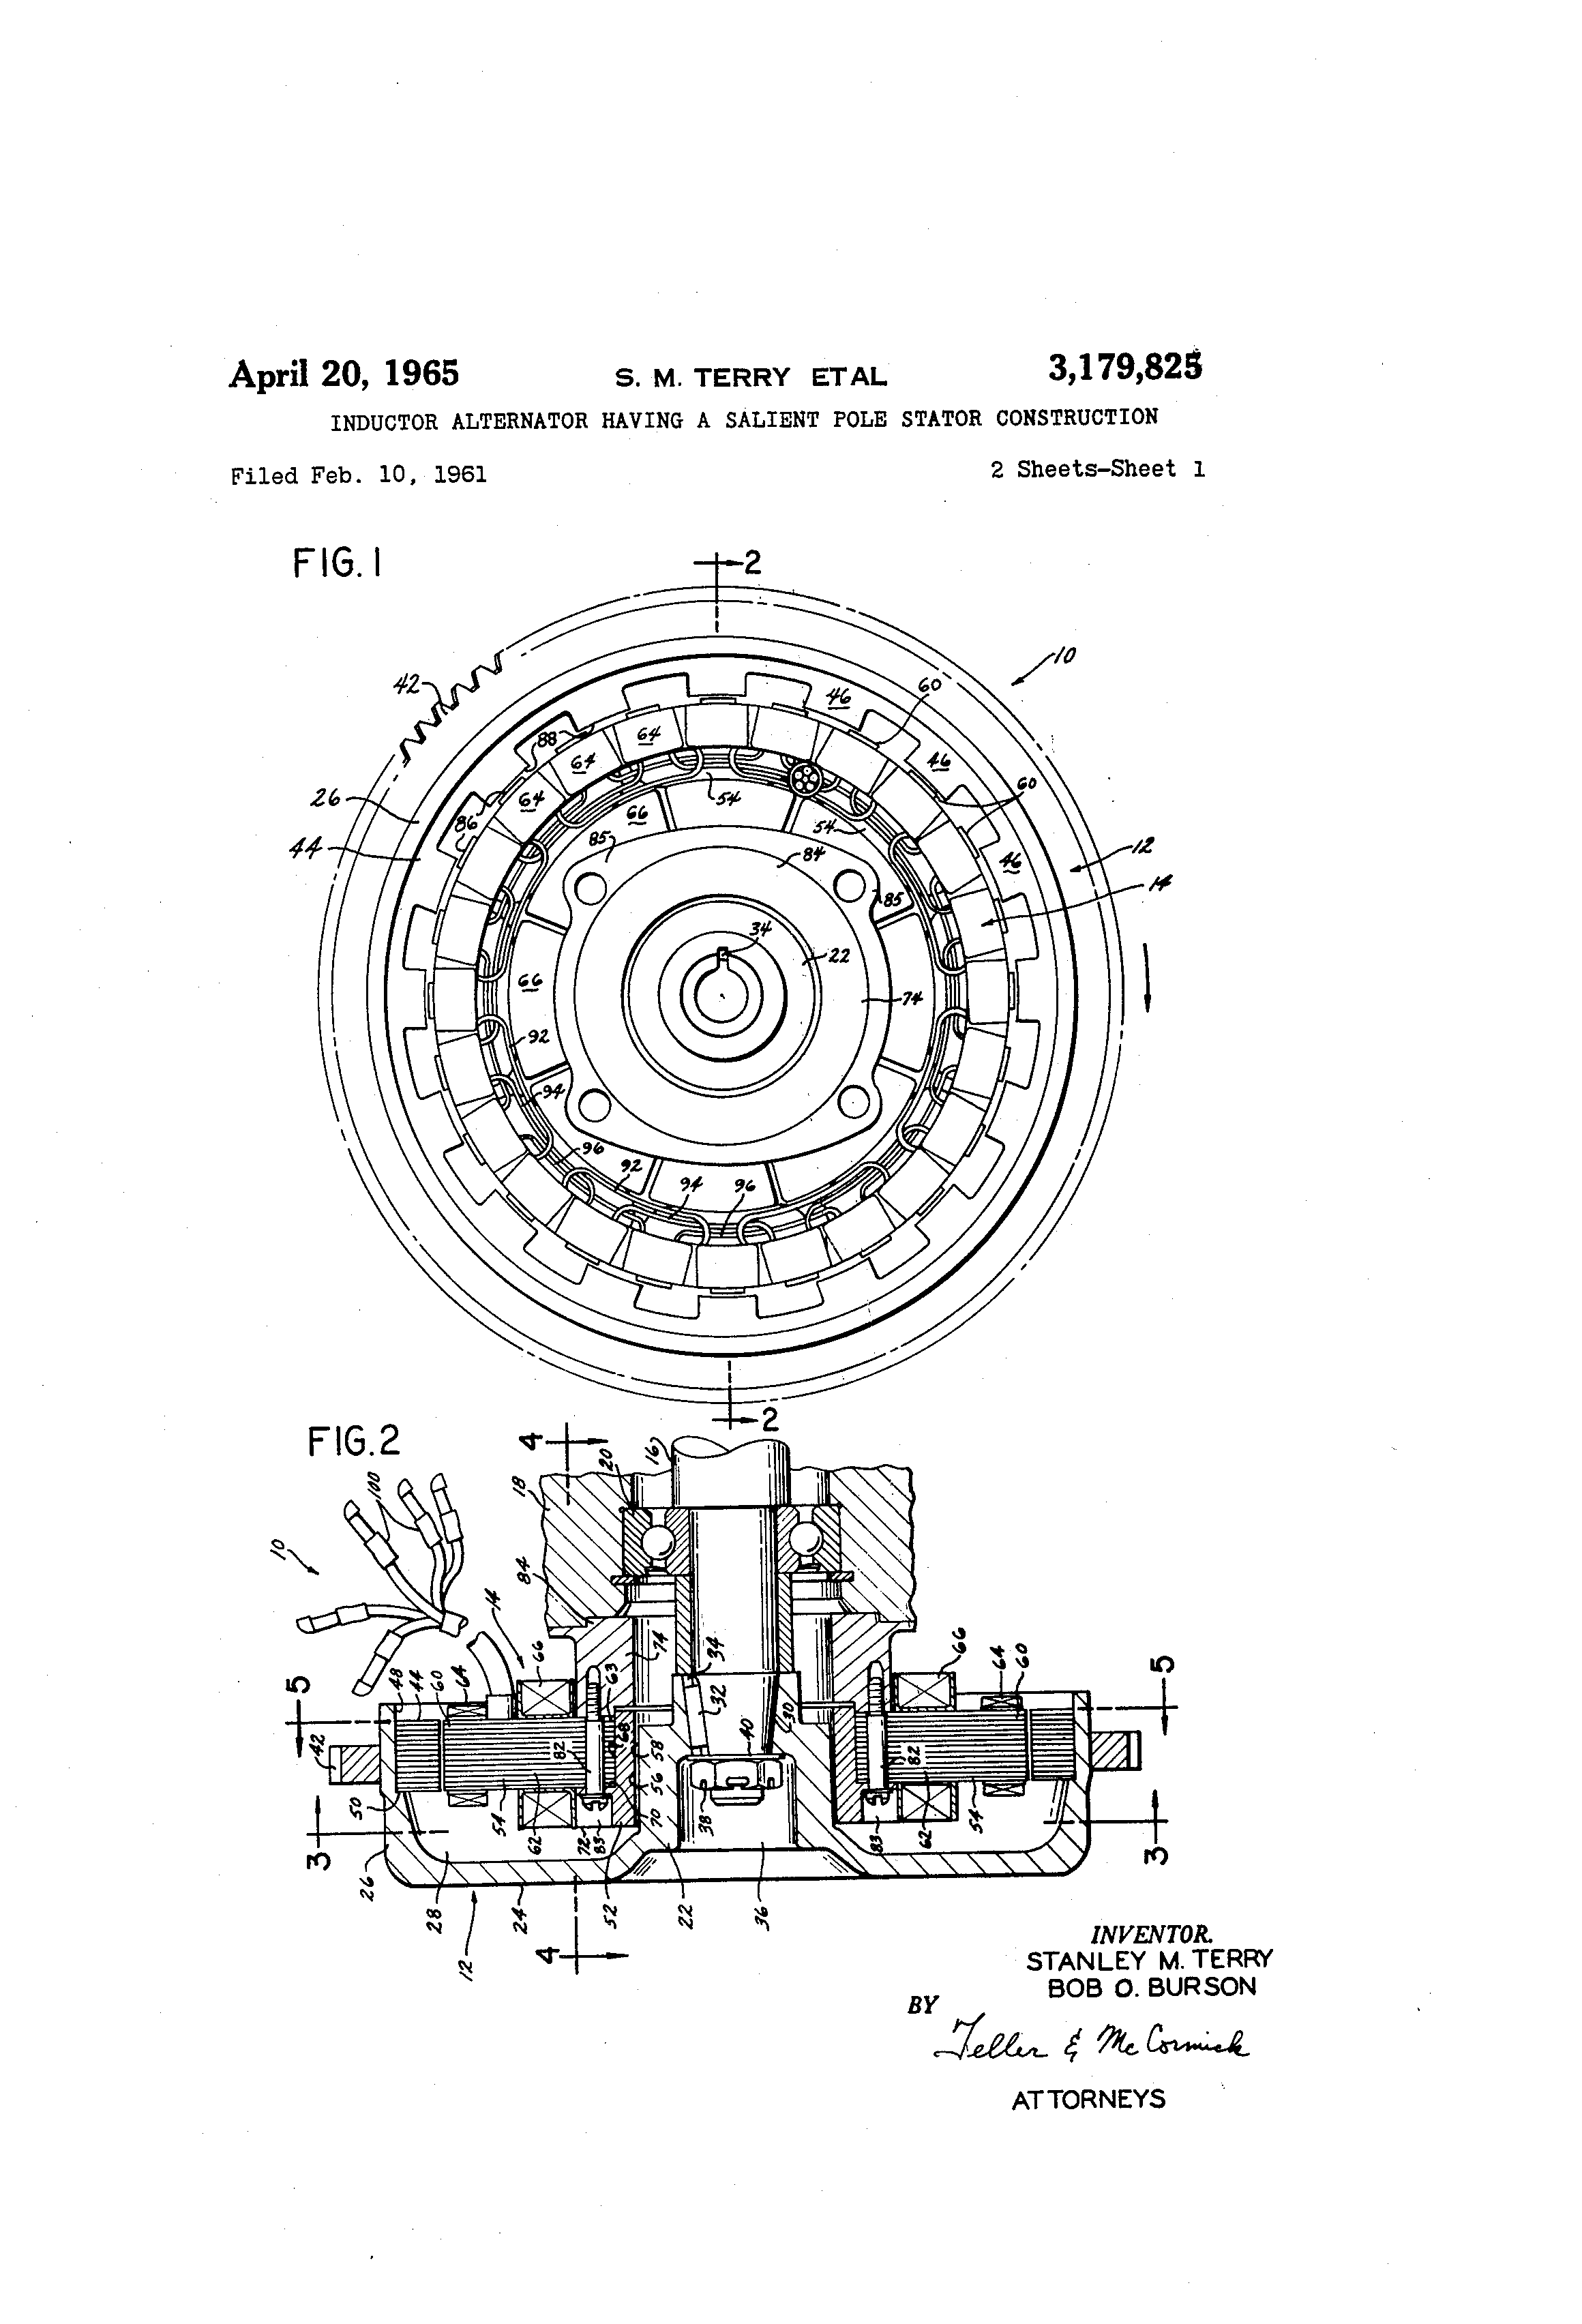 Mey 360 Wiring Diagram Page 2 And Schematics For To30 Ferguson Tractor 65 The Source Patent Drawing